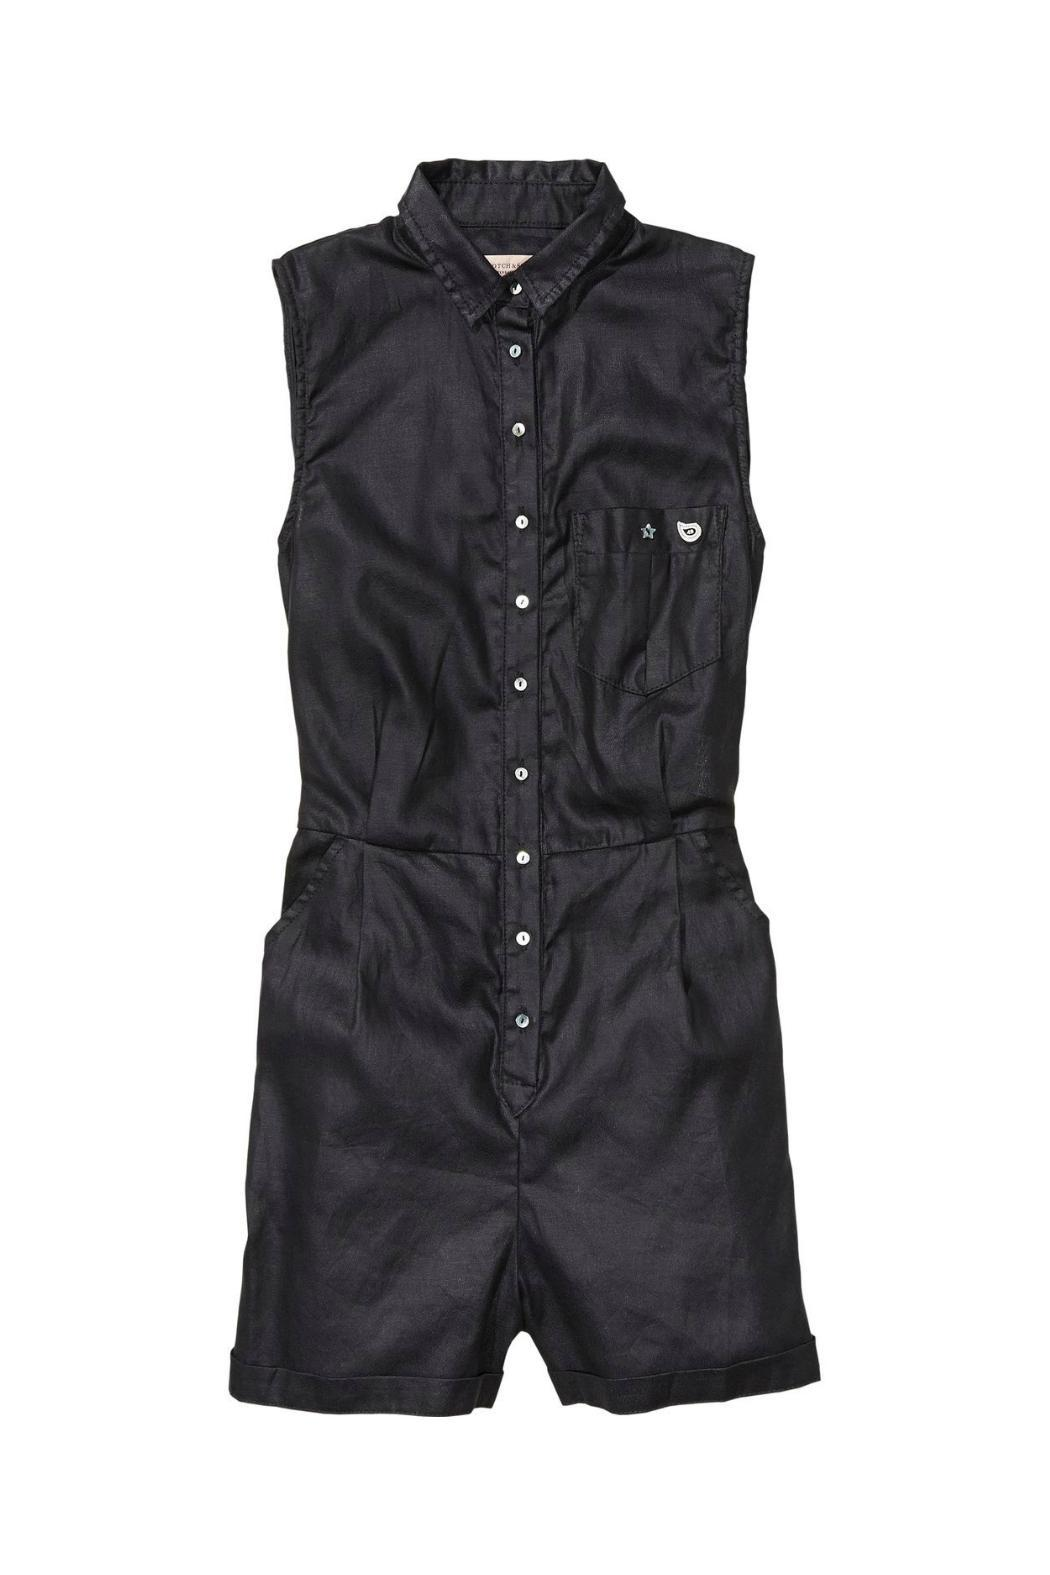 Maison Scotch Black Romper - Side Cropped Image